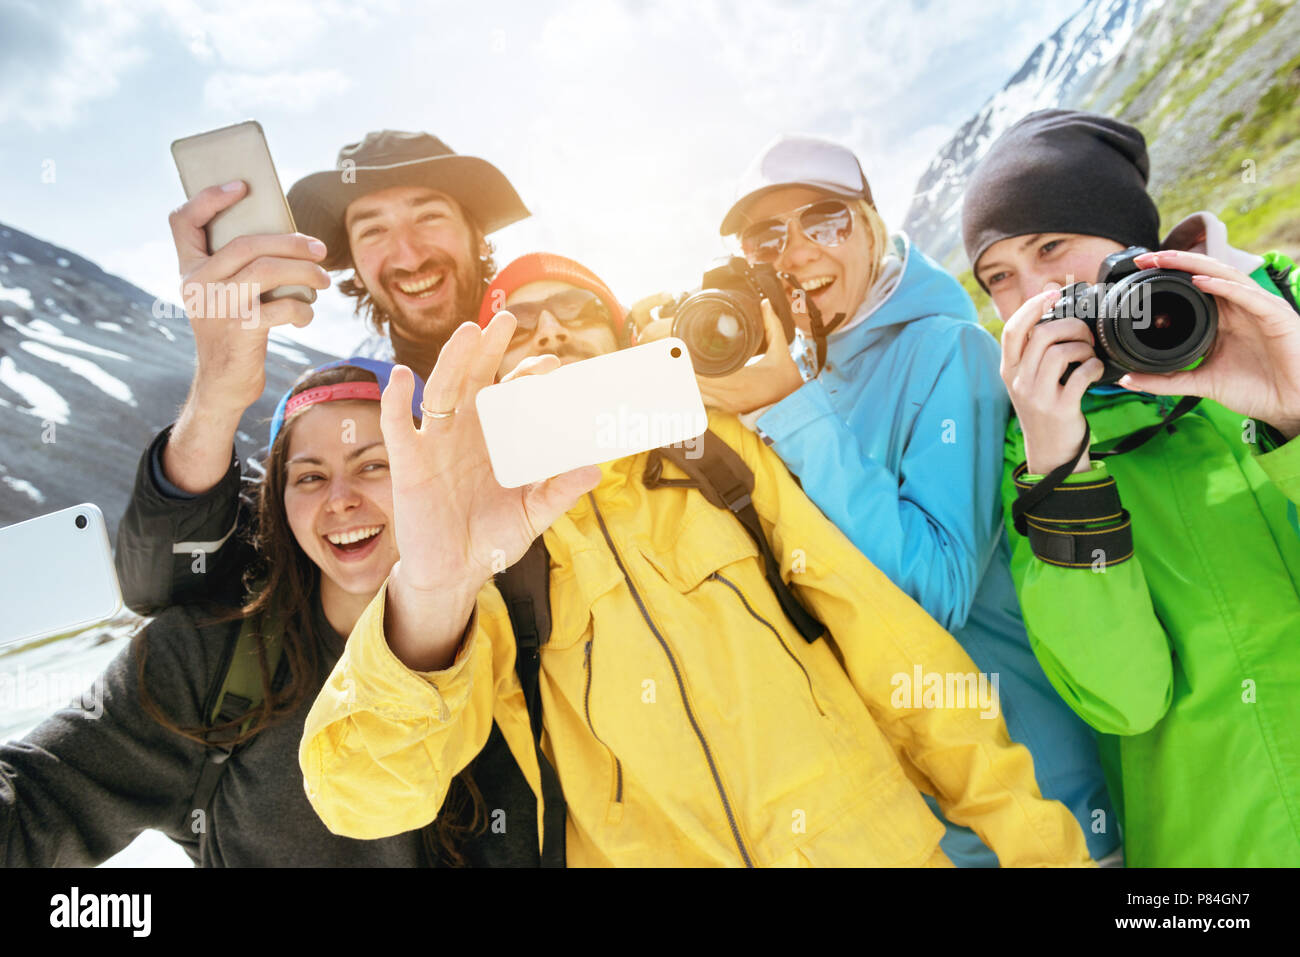 Group happy friends tourists photo selfie - Stock Image